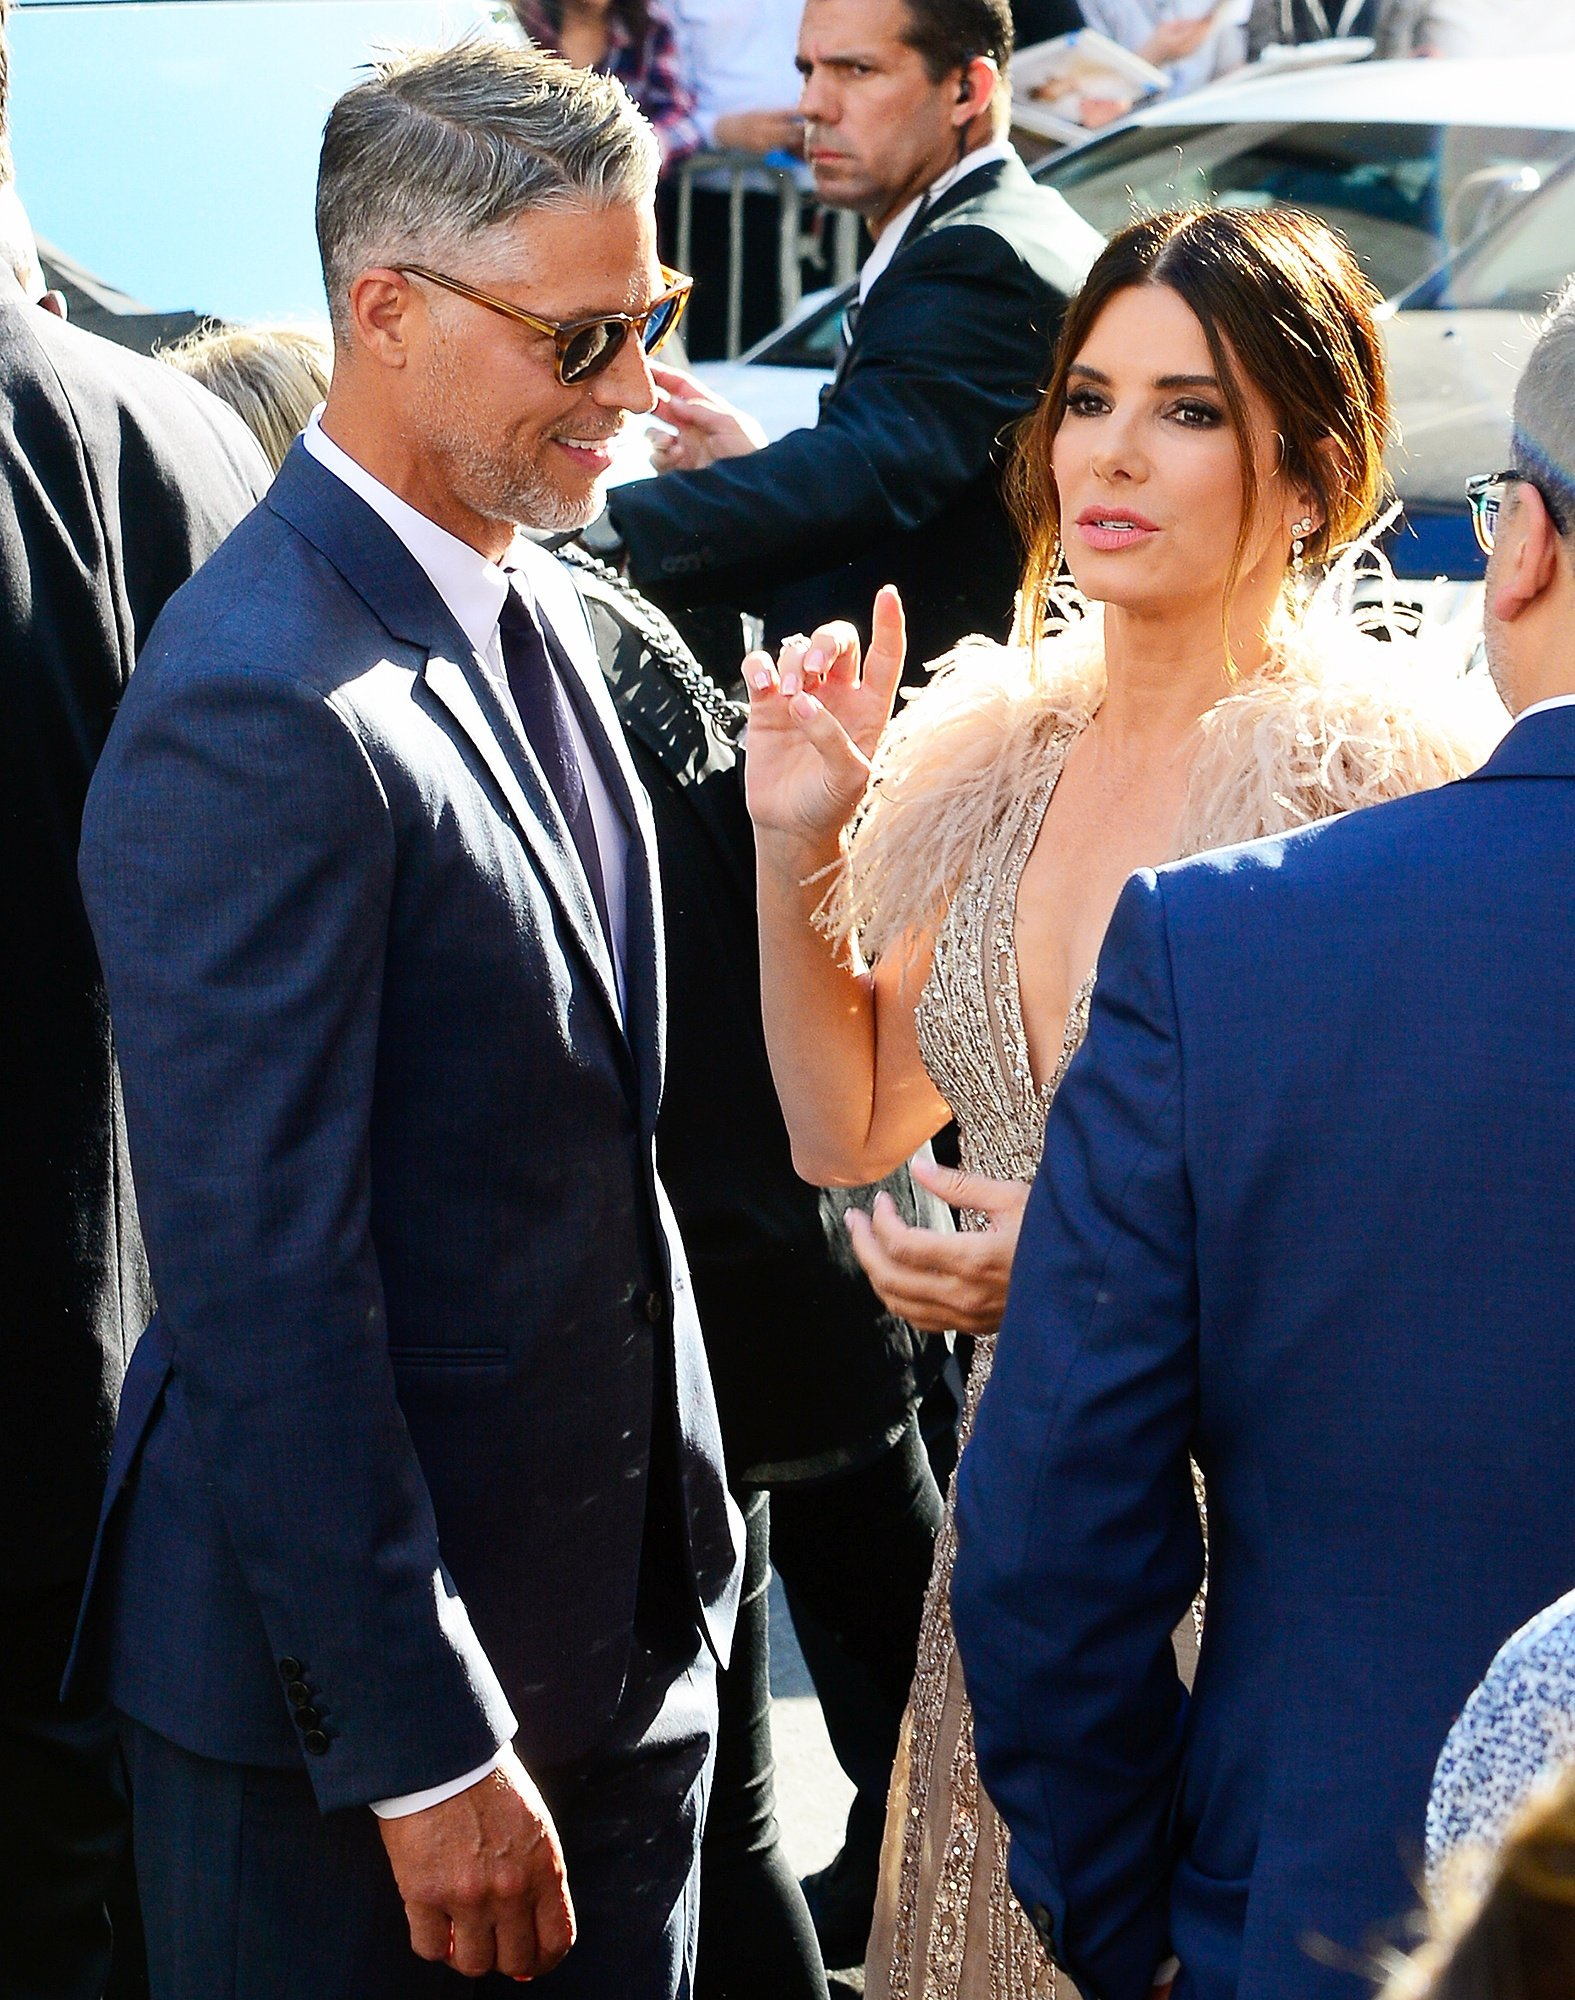 sandra bullock leaning on bryan randall promos 25 Things You Didn't Know About Bird Box